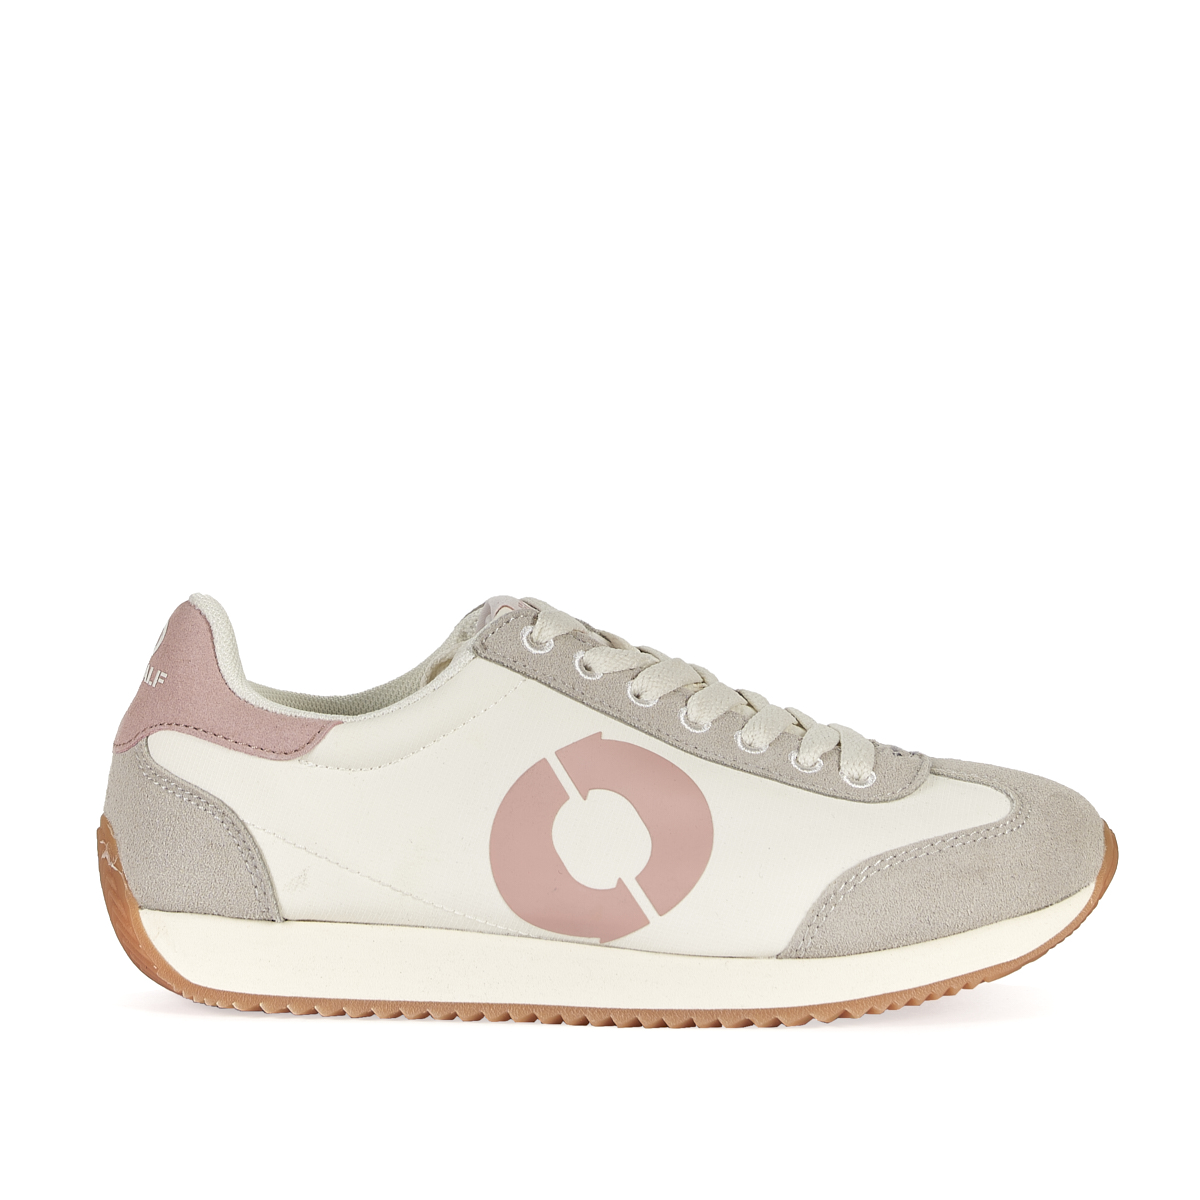 SHSNSEVEN0029WS20-181, WHITE PINK